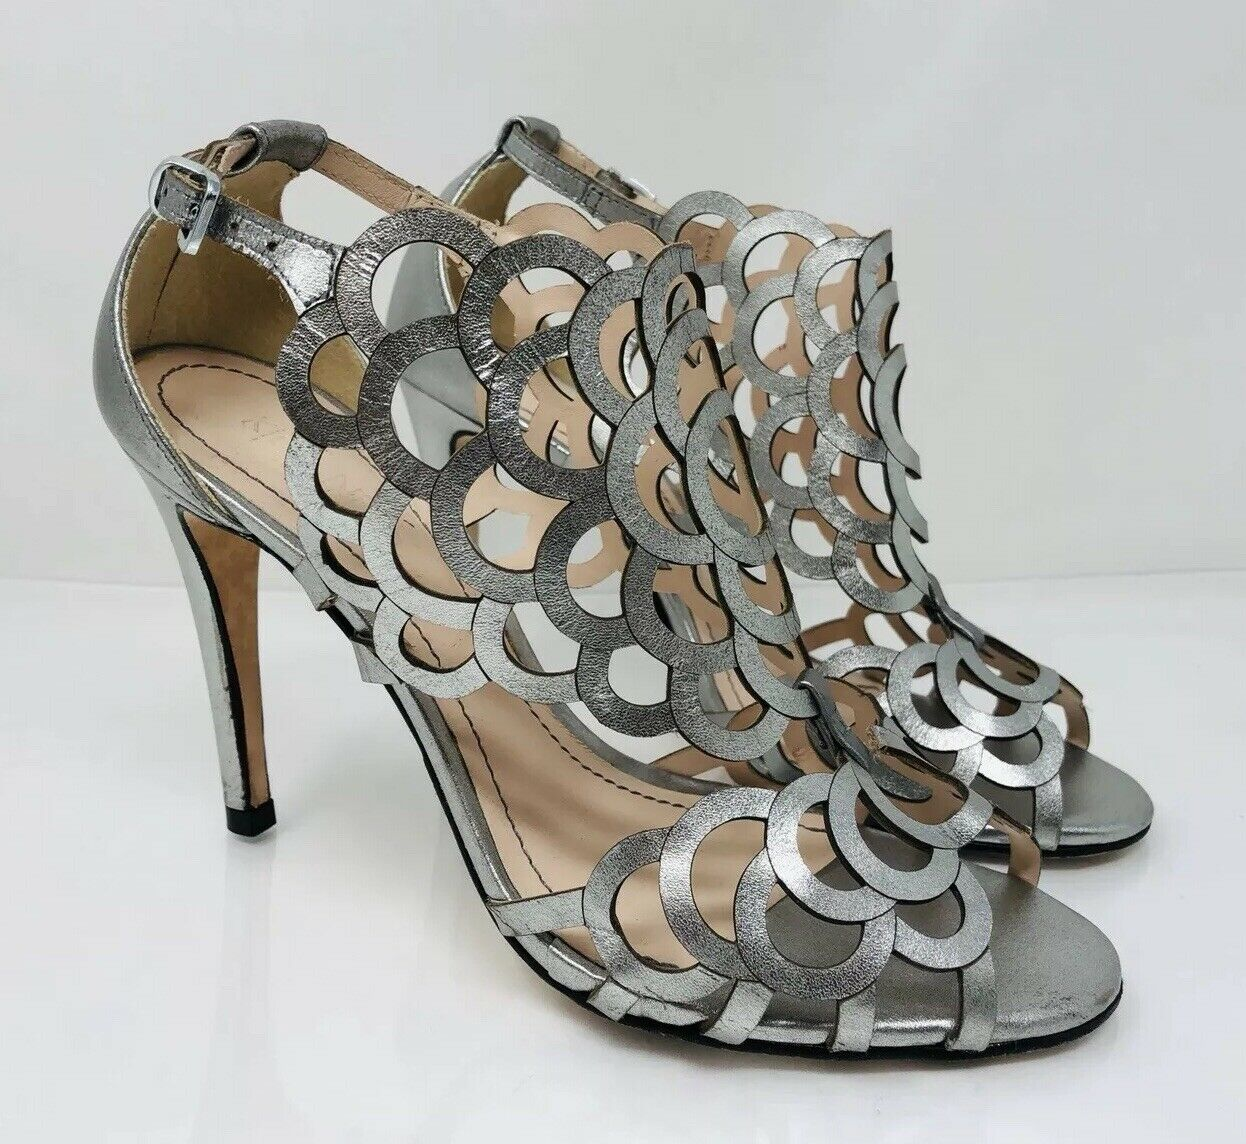 Klub Nico Women's 'Millie' Cutout Dress Sandal Size 5 Gunmetal Leather MSRP